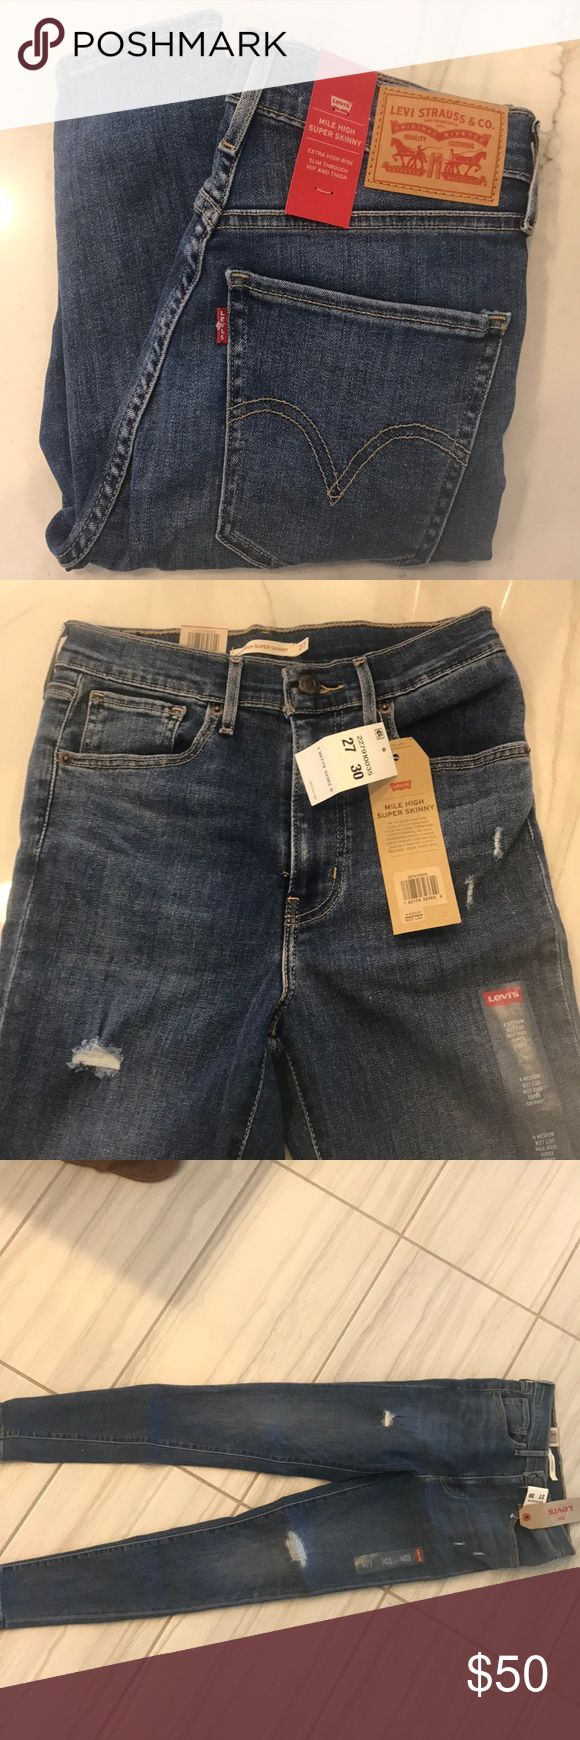 Mile high super skinny jeans Distressed skinny jeans. Levi's Jeans Skinny